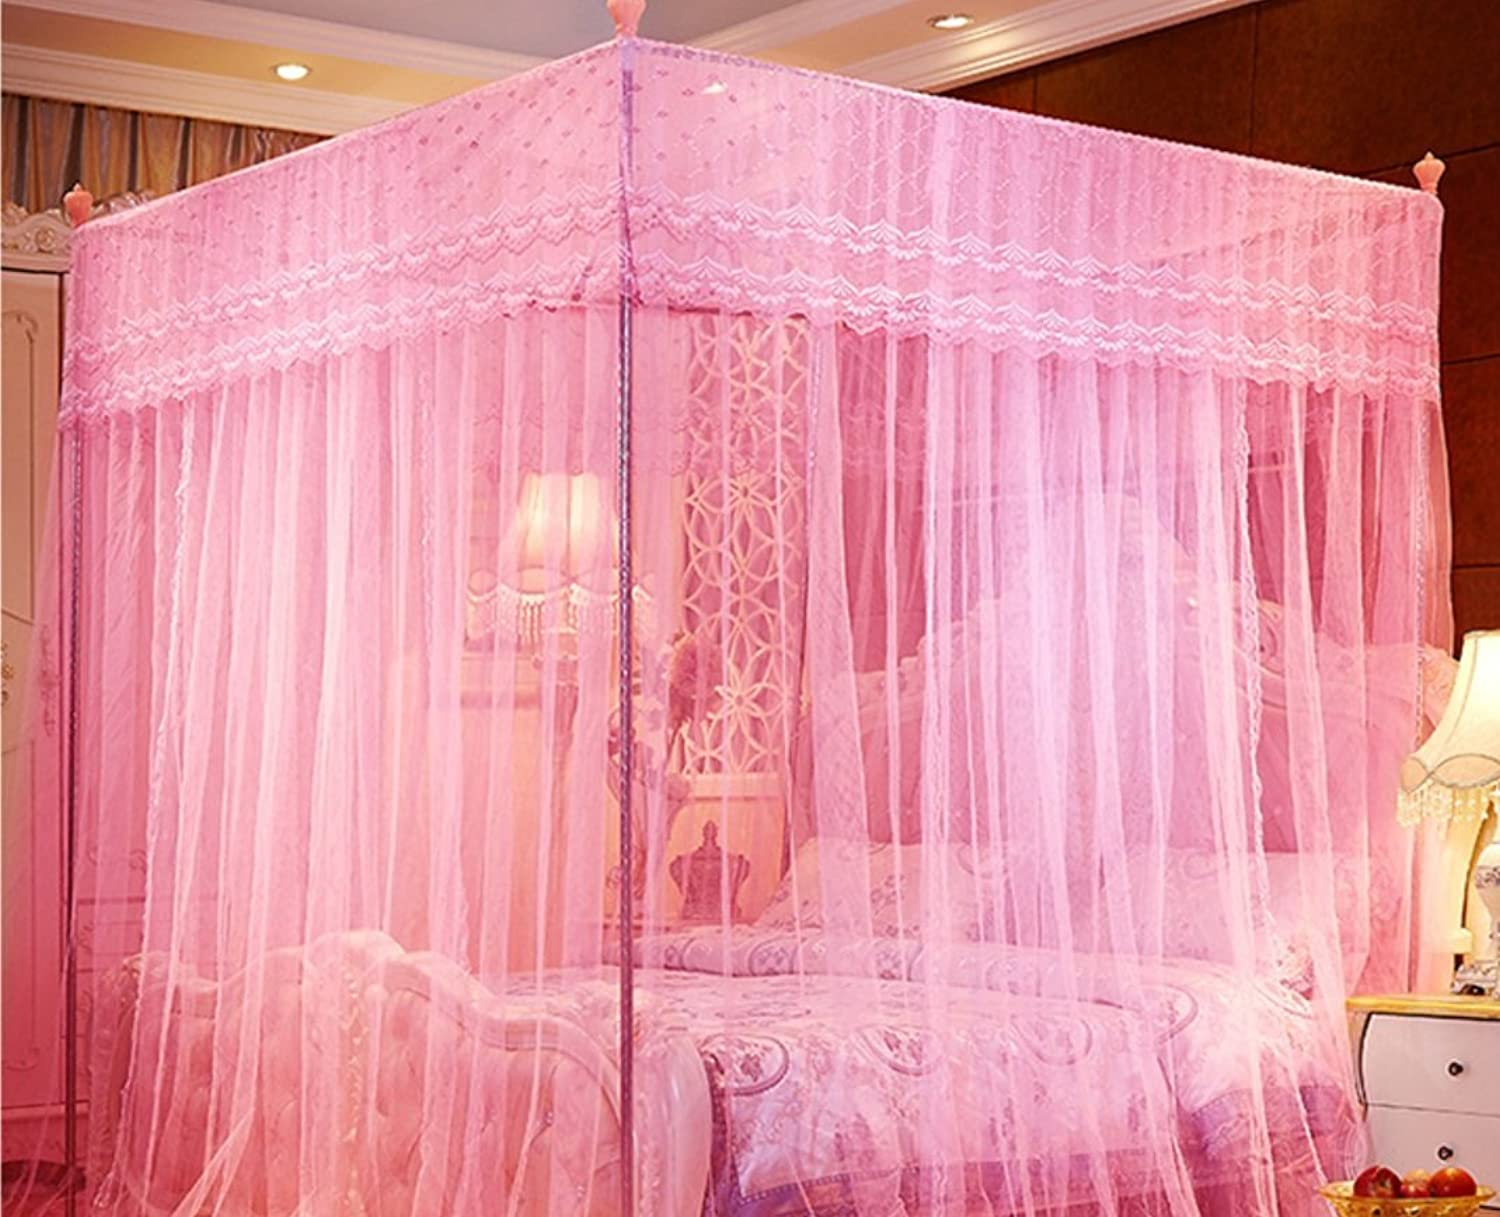 Palace Mosquito Net Floor Type Princess Nets Top Stainless Steel Mosquito Net ZXCV (color   Pink, Size   1.2m2m-22 Bracket)